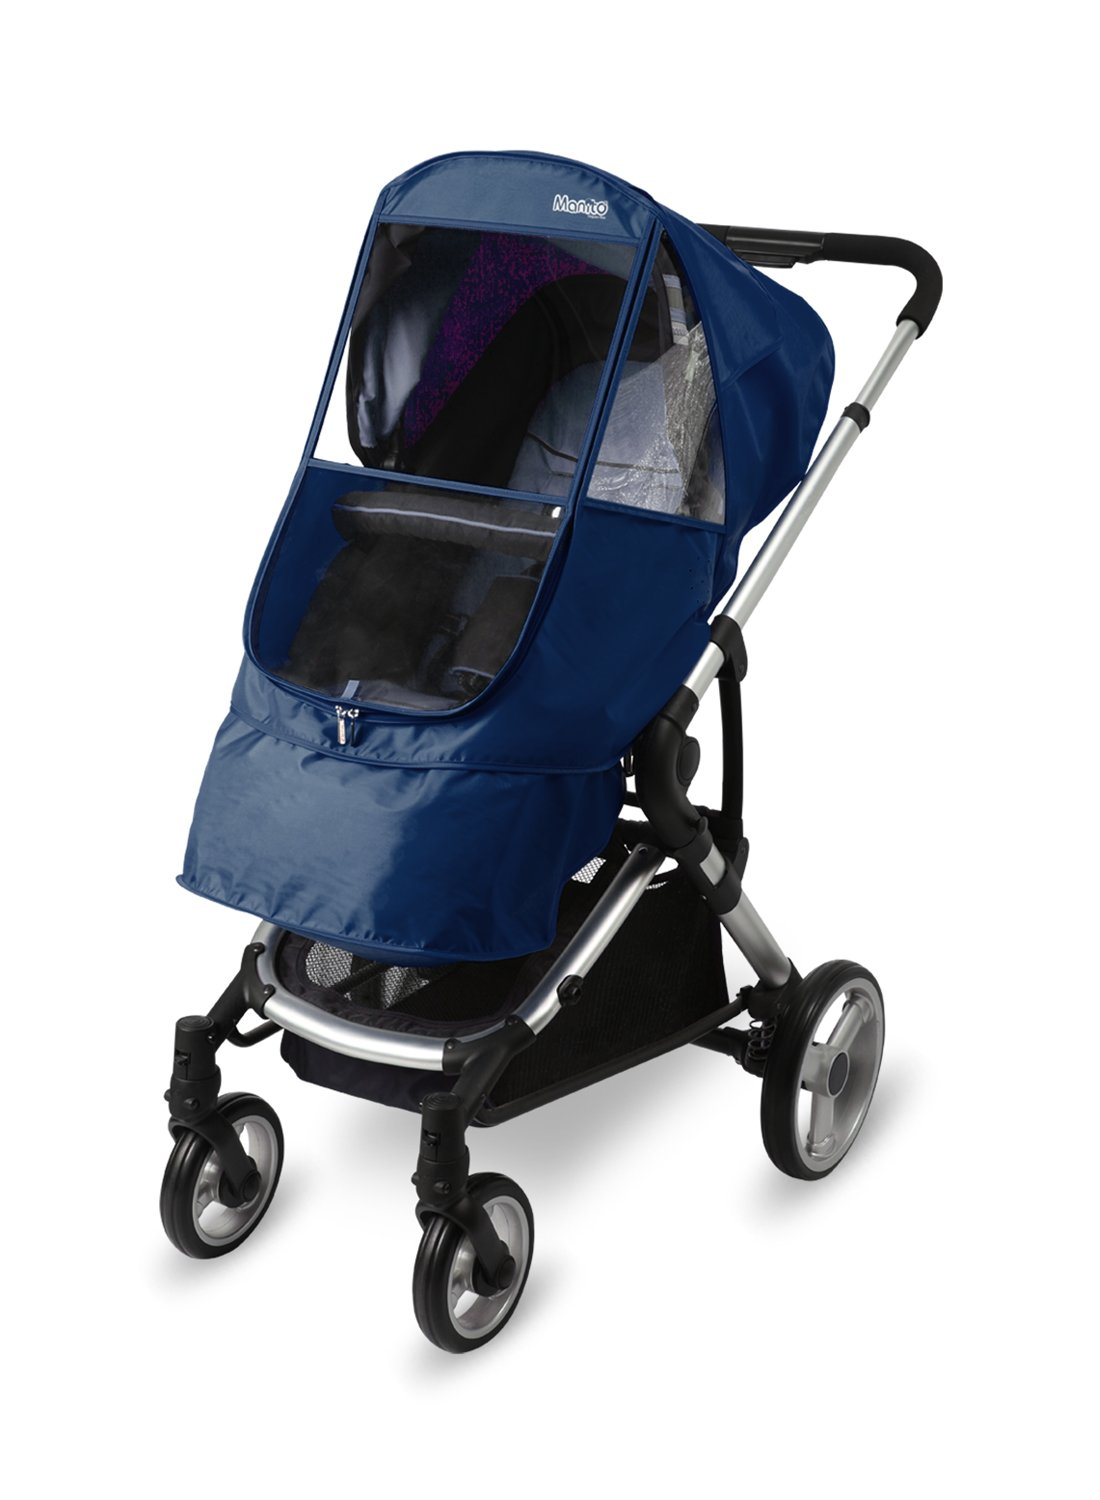 Manito Elegance Beta Stroller Weather Shield / Rain Cover - Navy EGCVB-49000